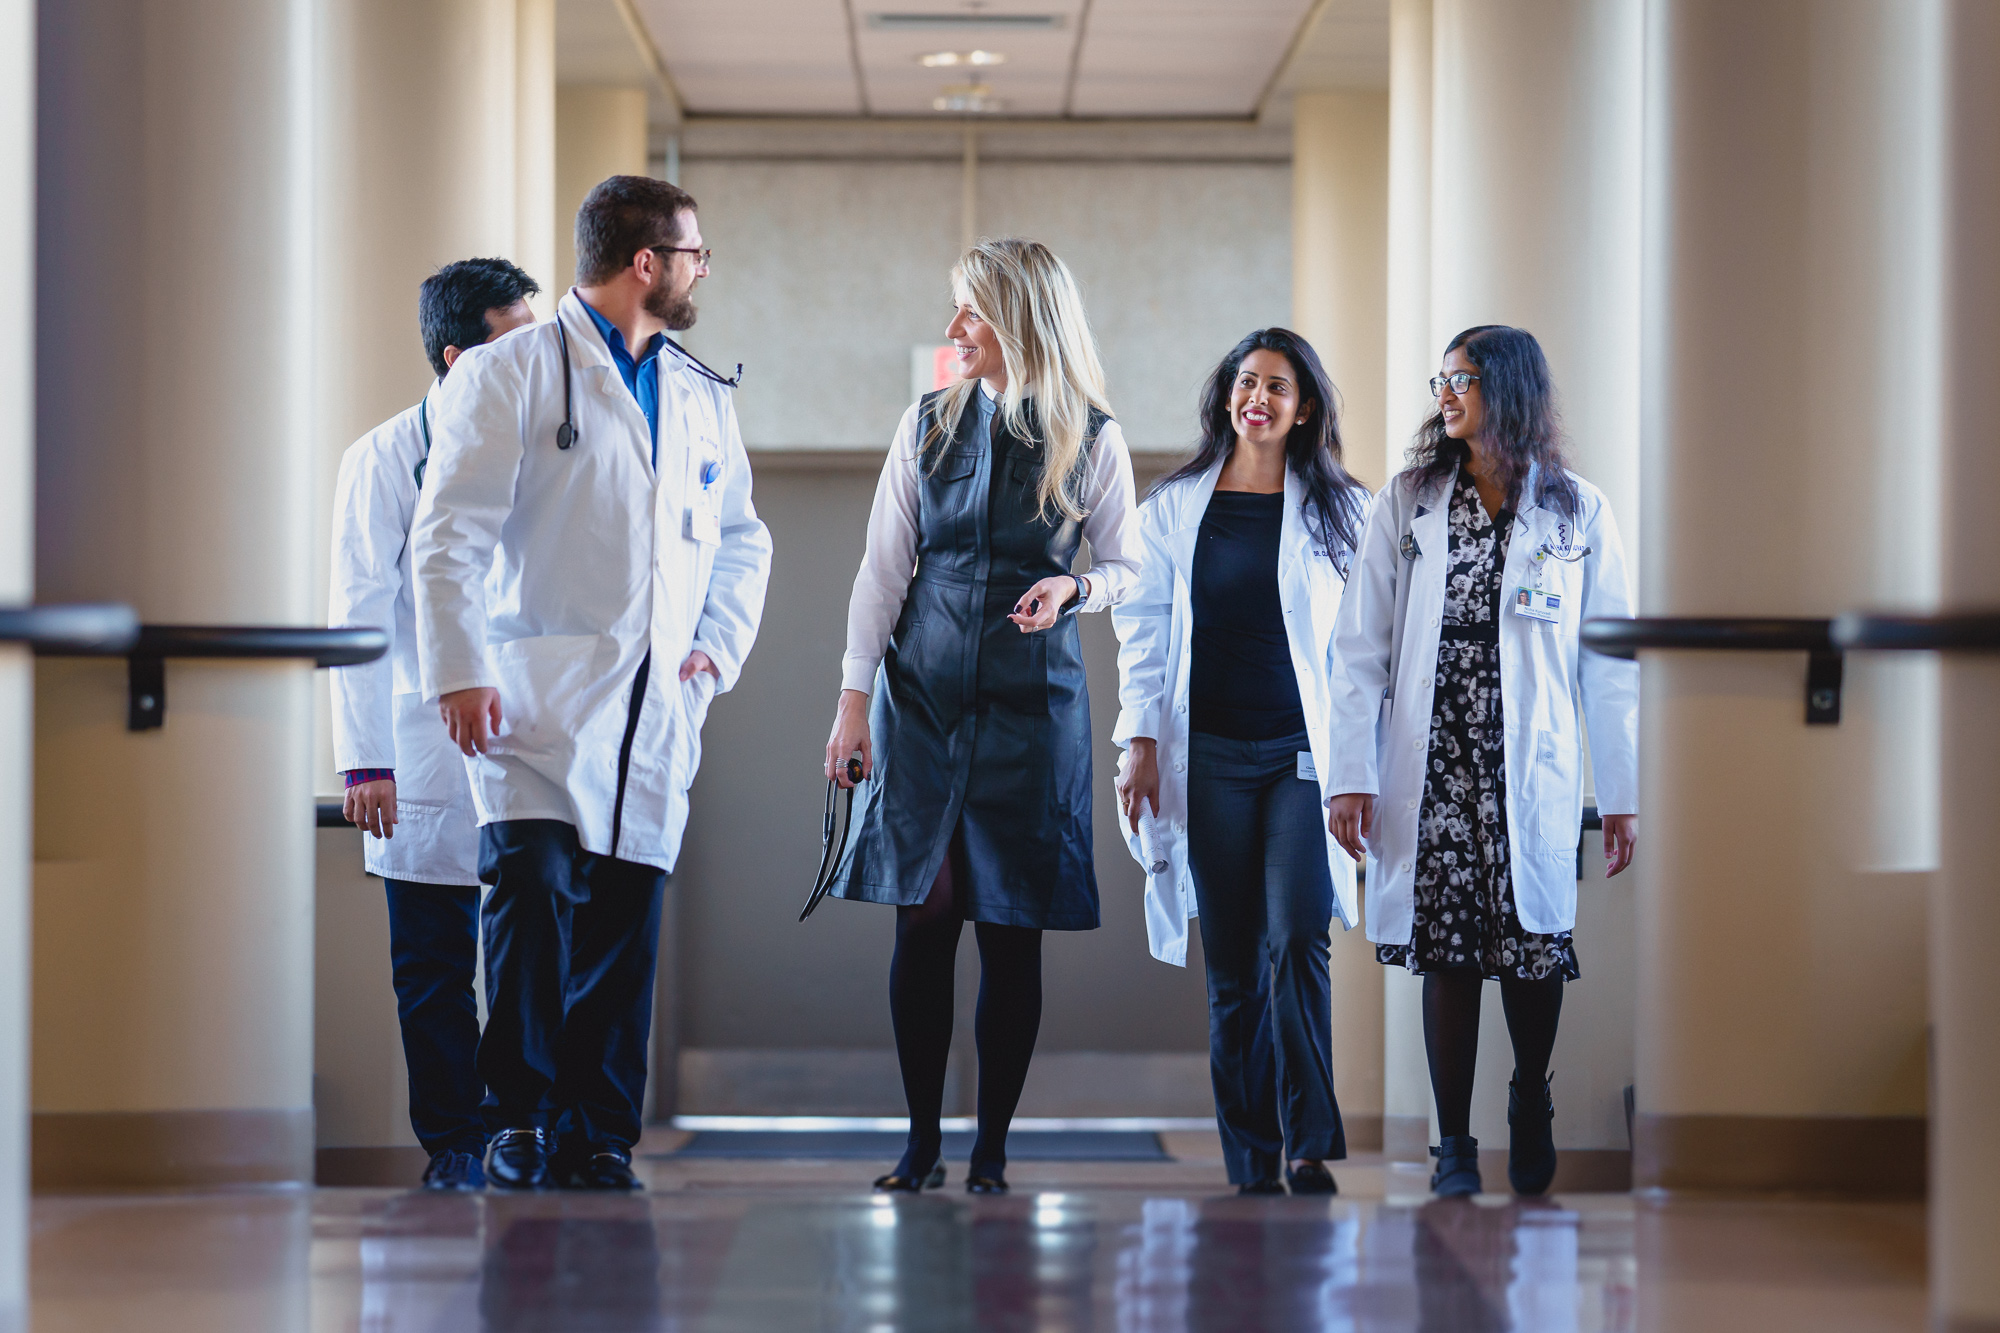 Internal medicine faculty member walking with residents